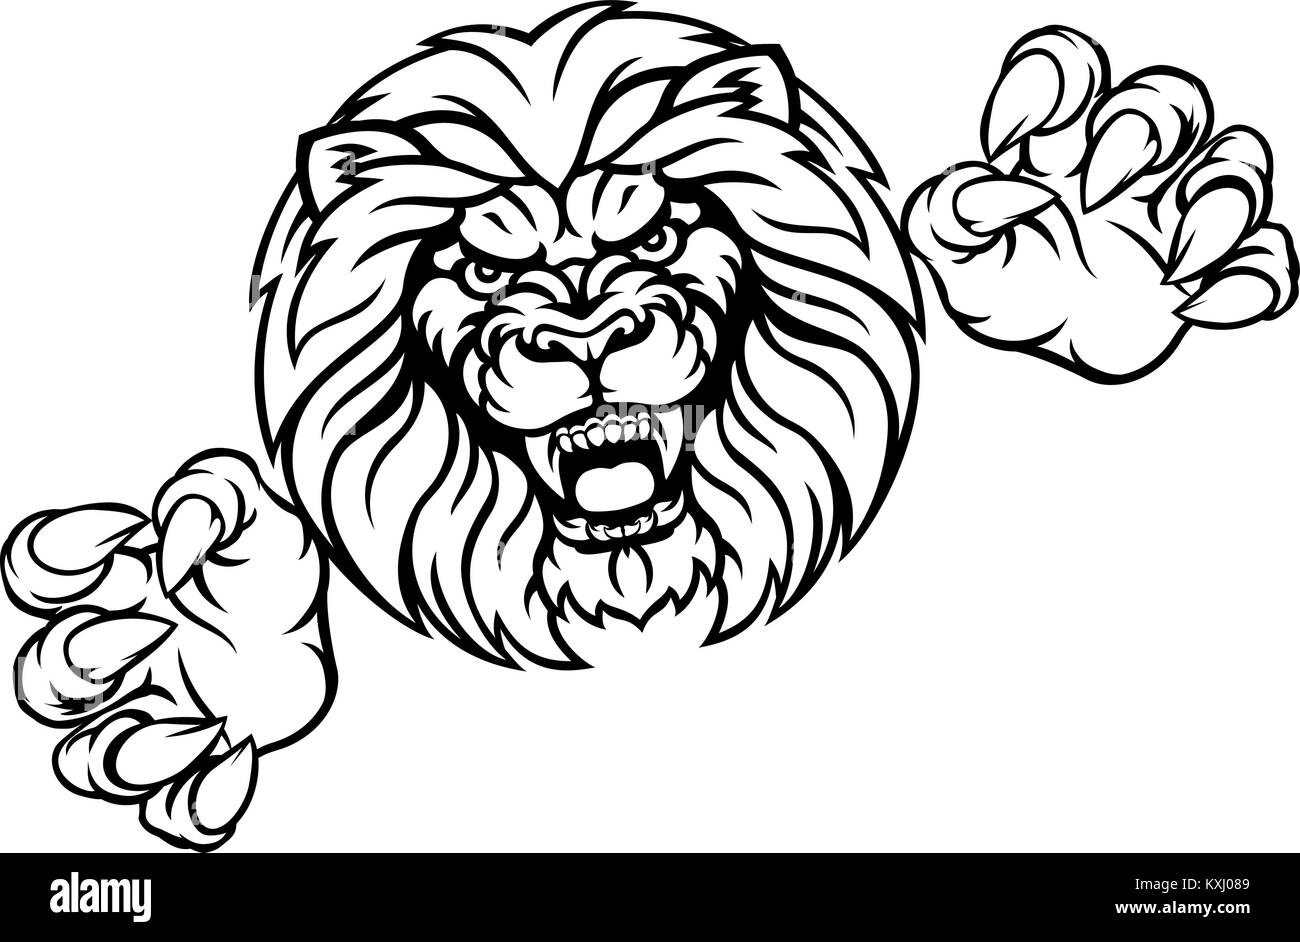 Lion Animal Sports Mascot - Stock Vector